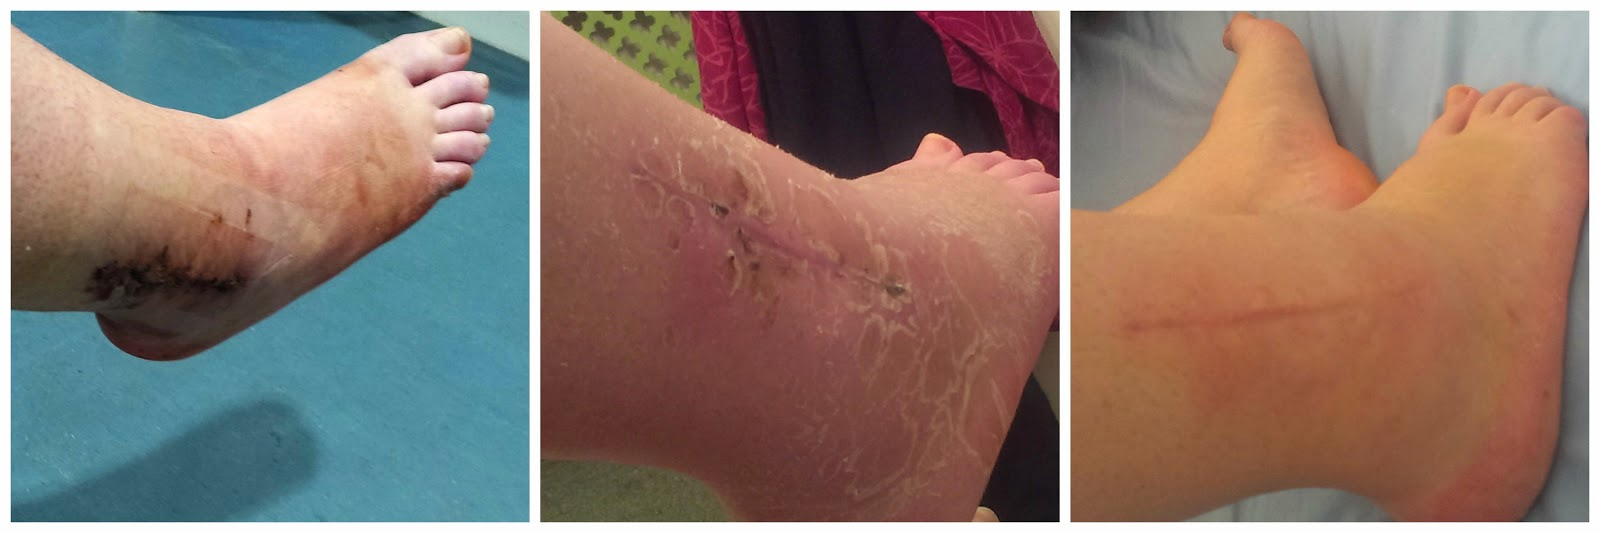 The healing process of the scar on the right side of my ankle